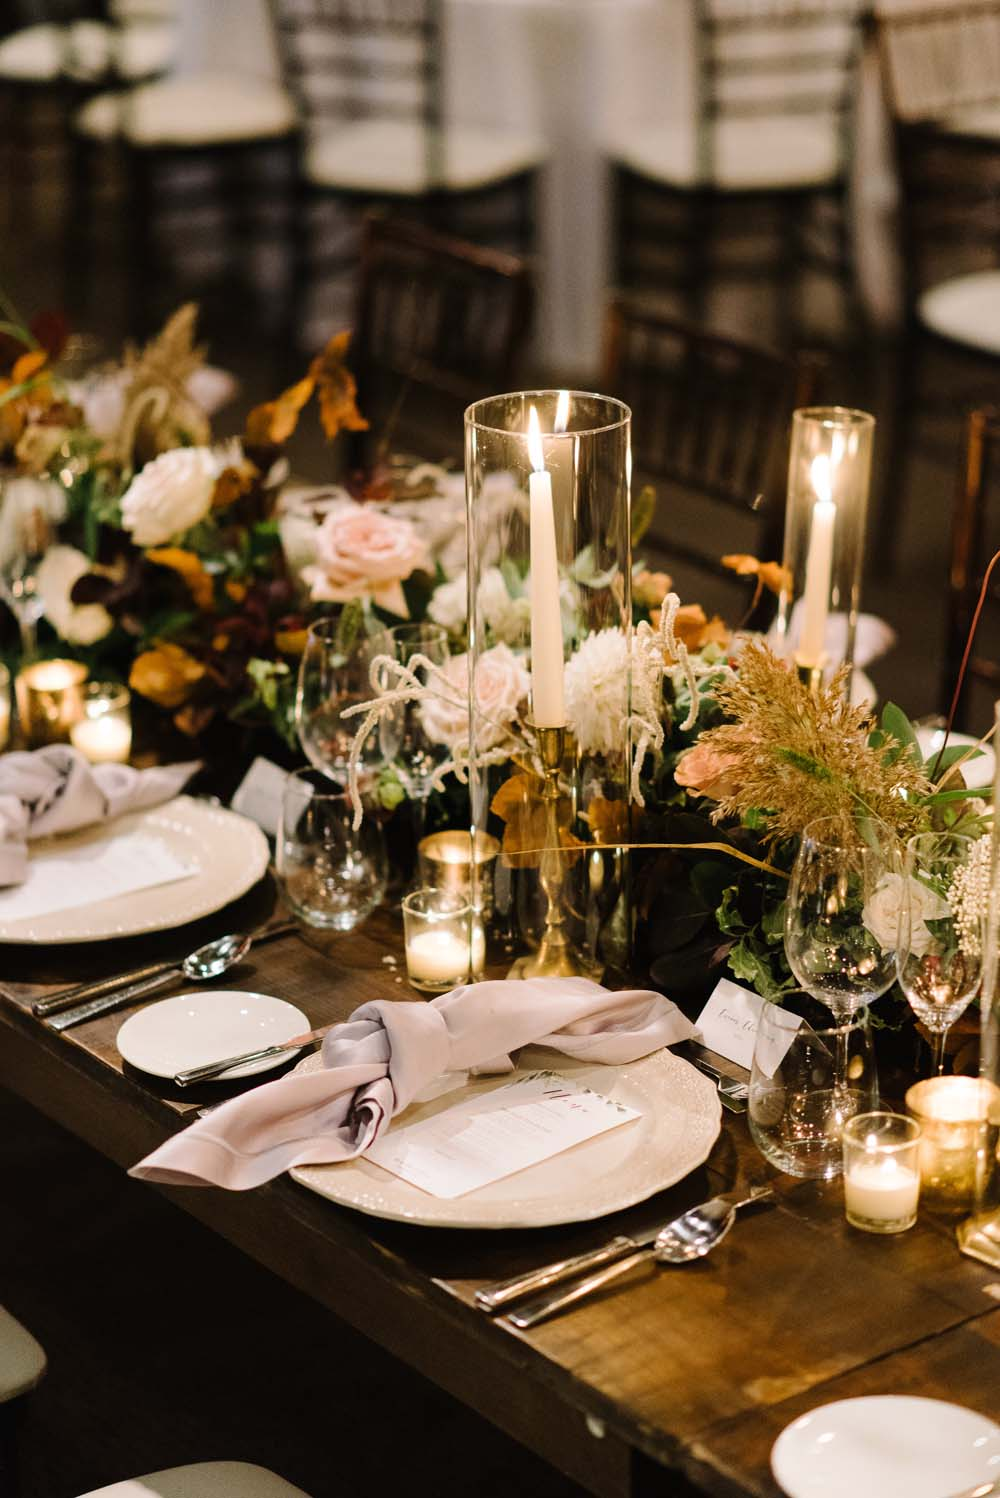 A Rustic Lakeside Wedding in Toronto, Ontario - Place Setting